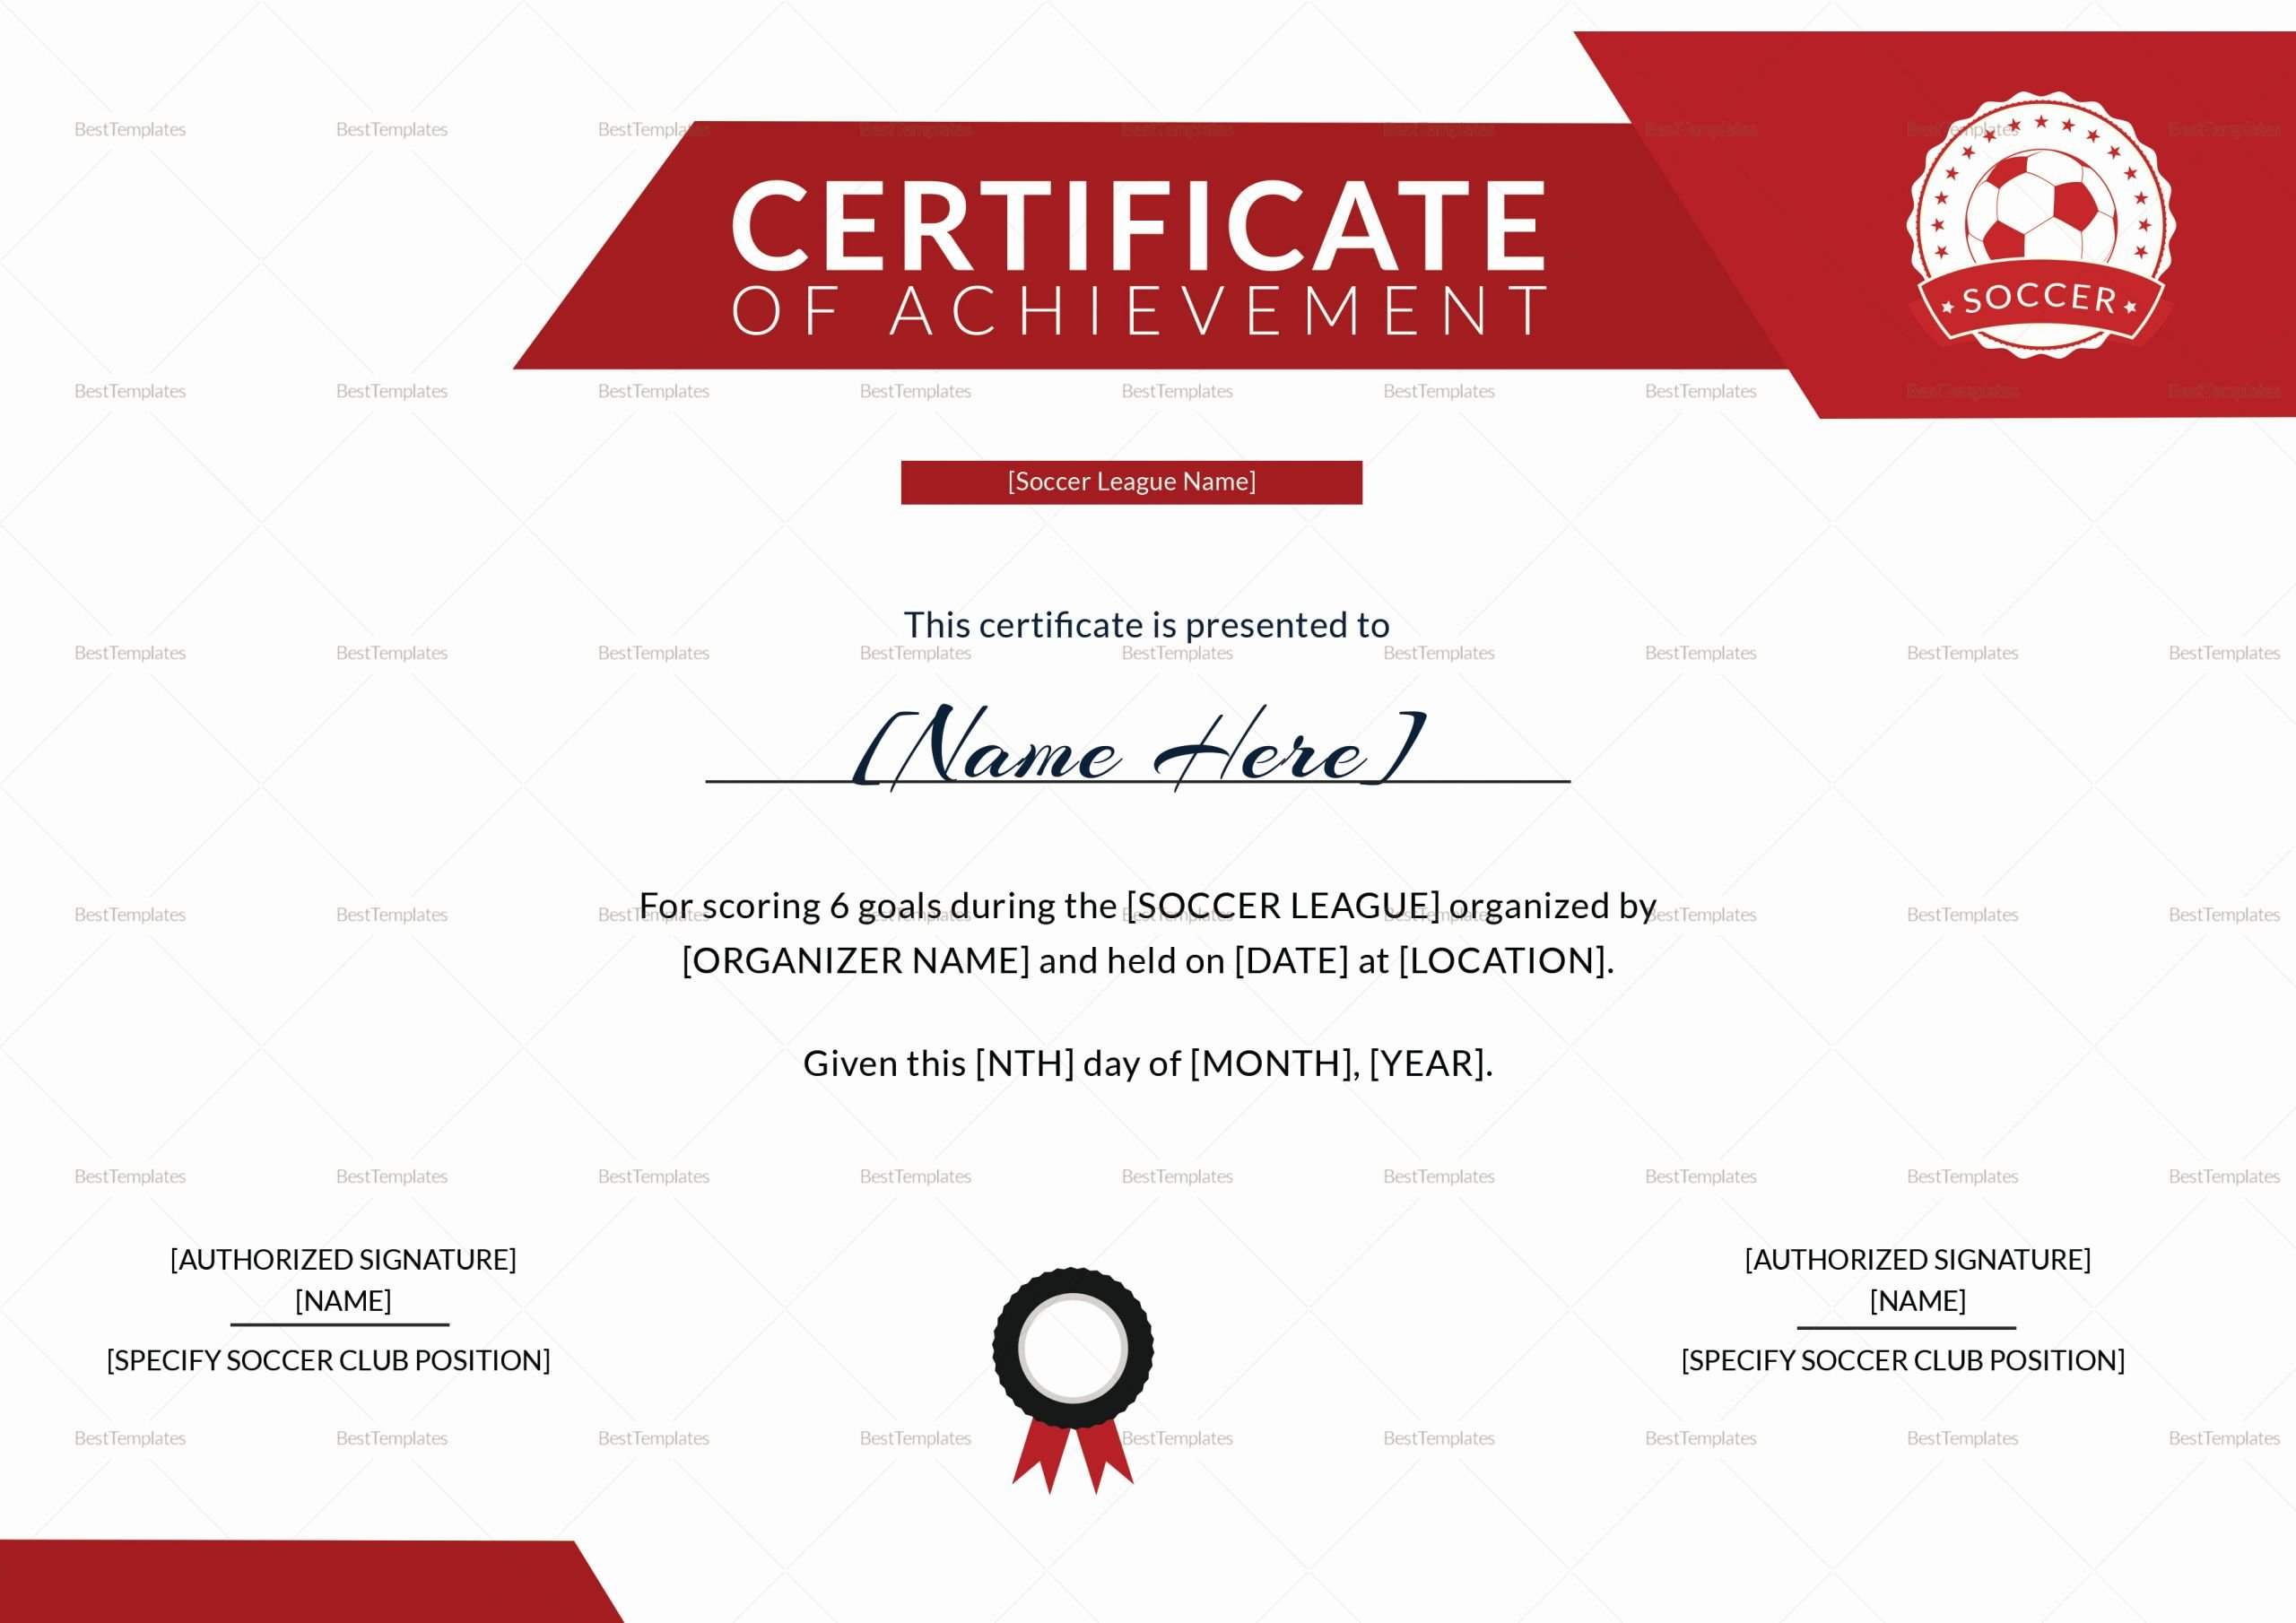 Soccer Certificate Template Word Awesome soccer Achievement Certificate Design Template In Psd Word